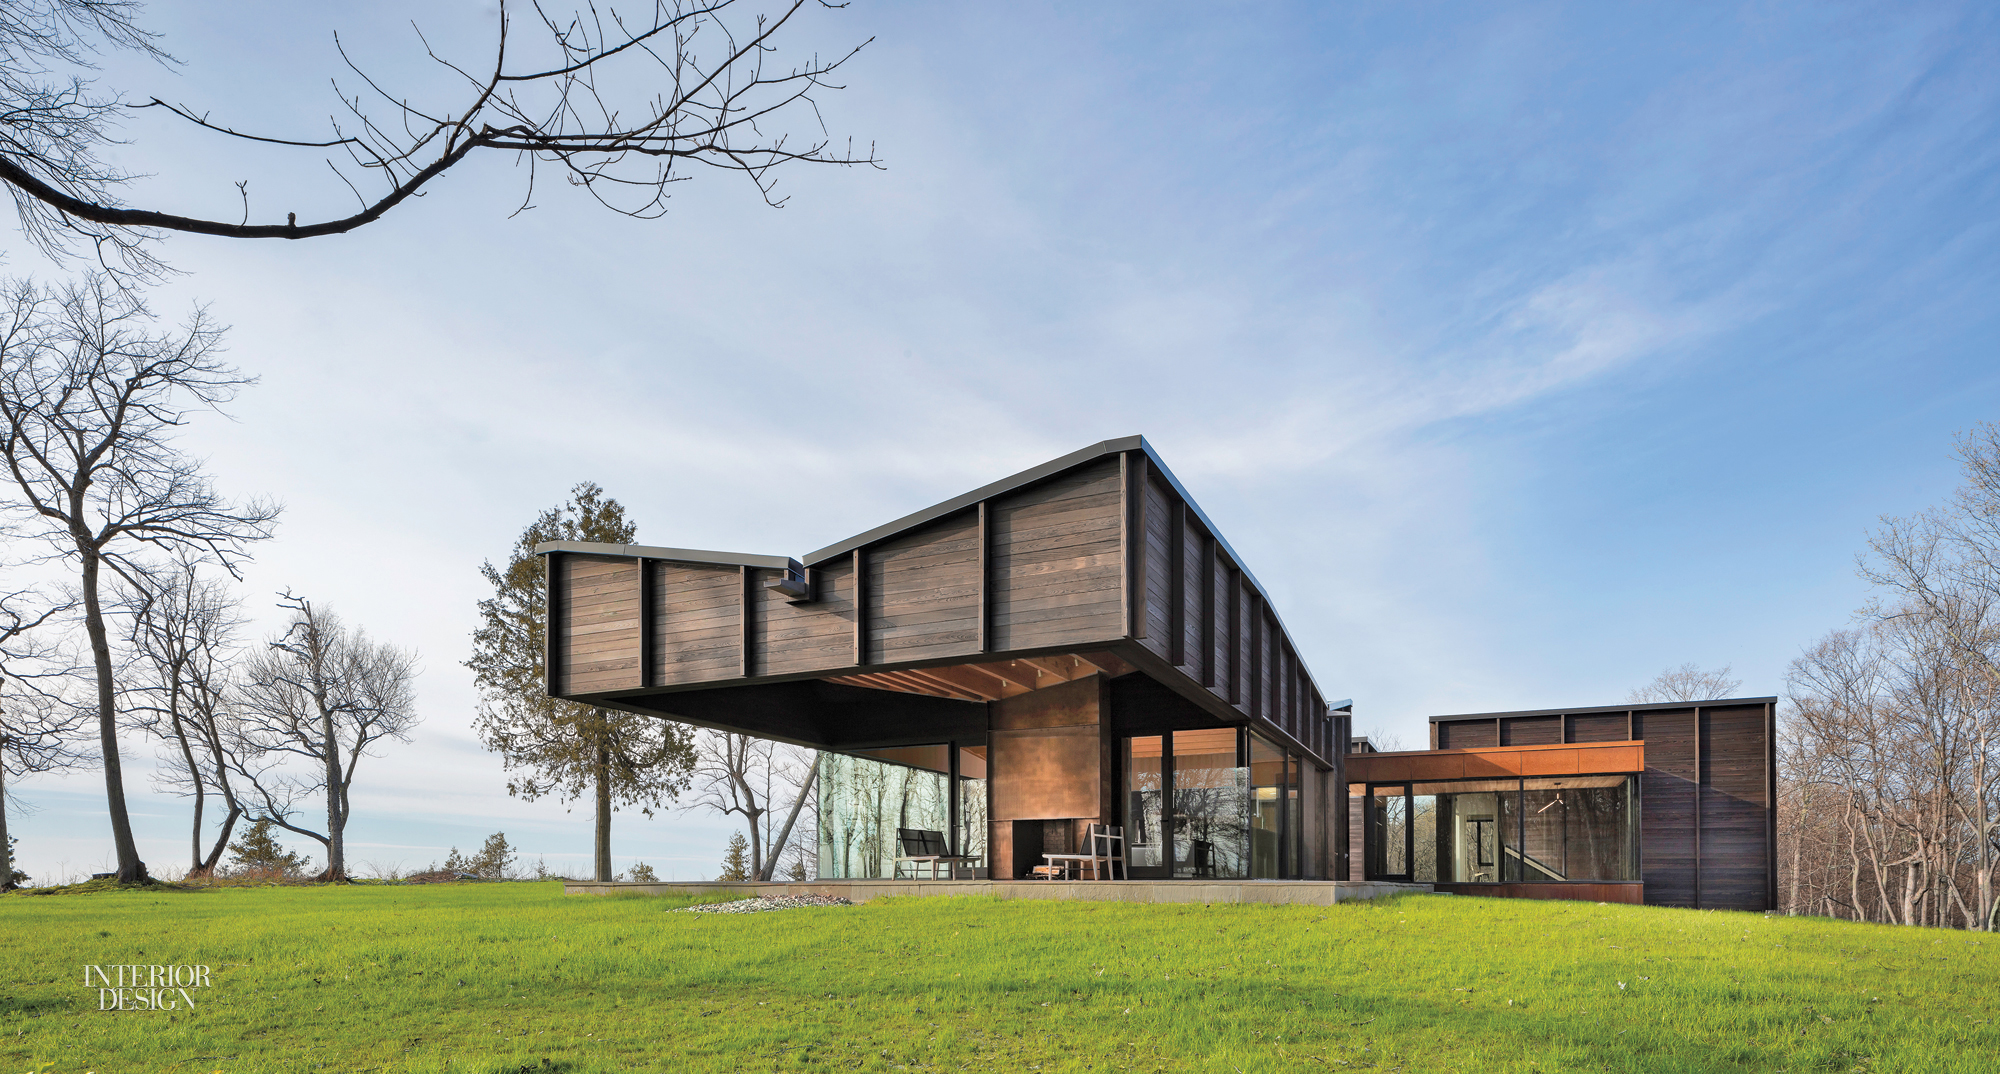 Architecture michigan lake housedesai chia architecture: 2016 best of year